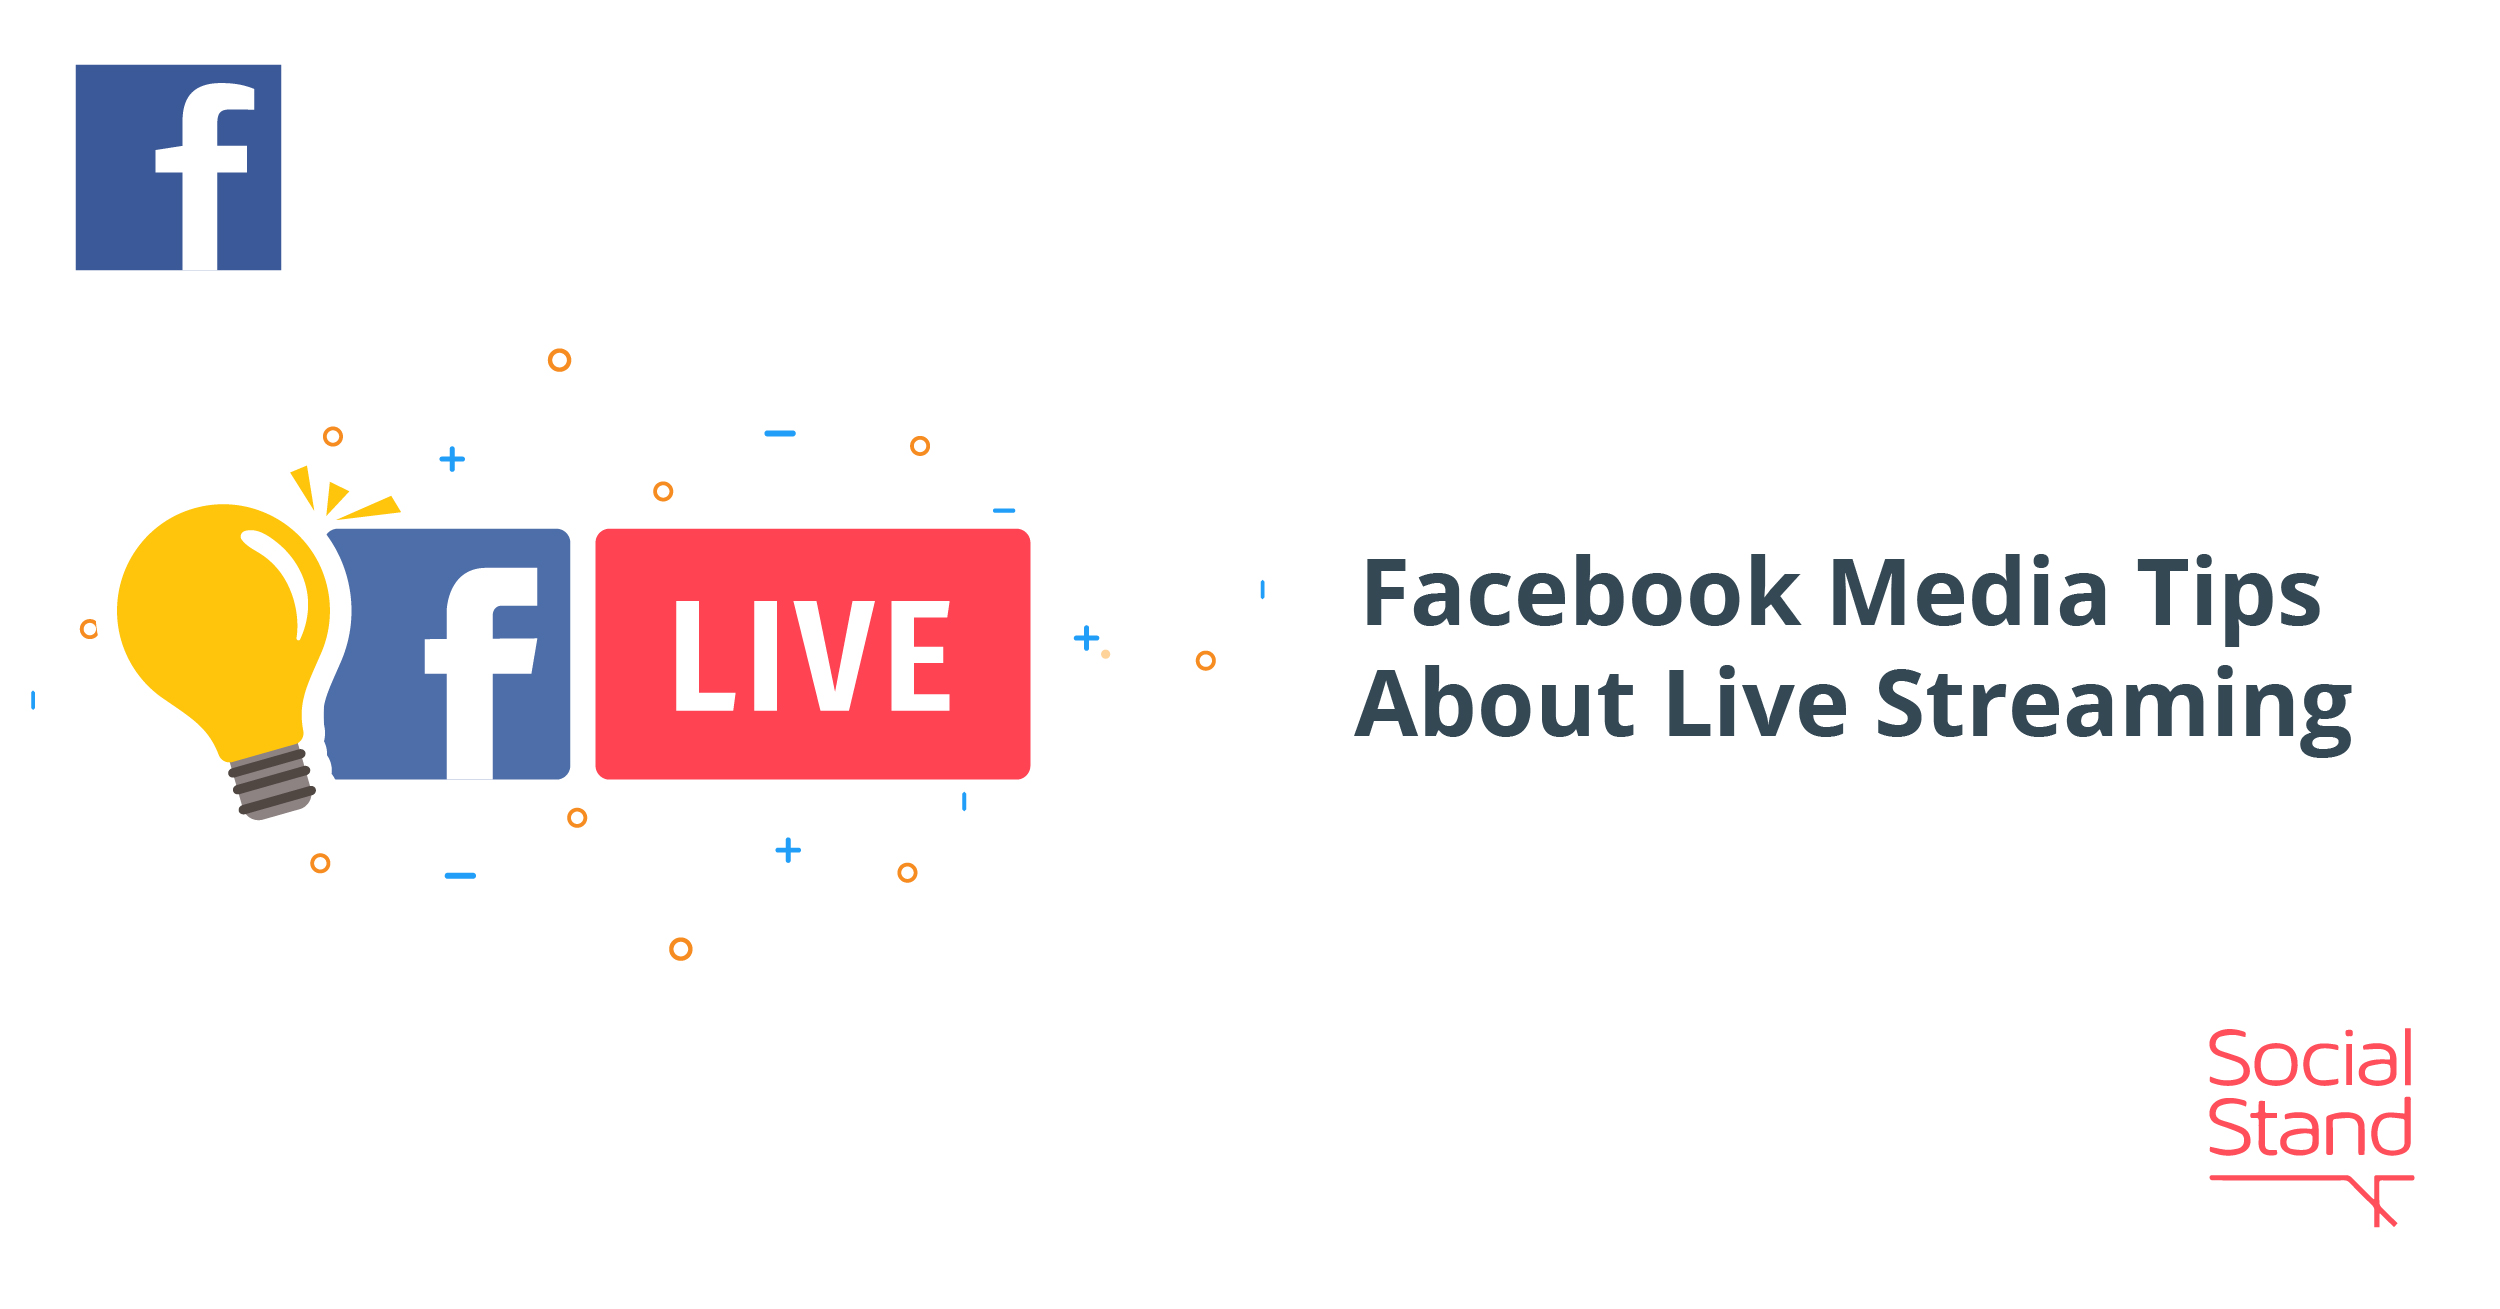 Facebook Media Tips About Live Streaming